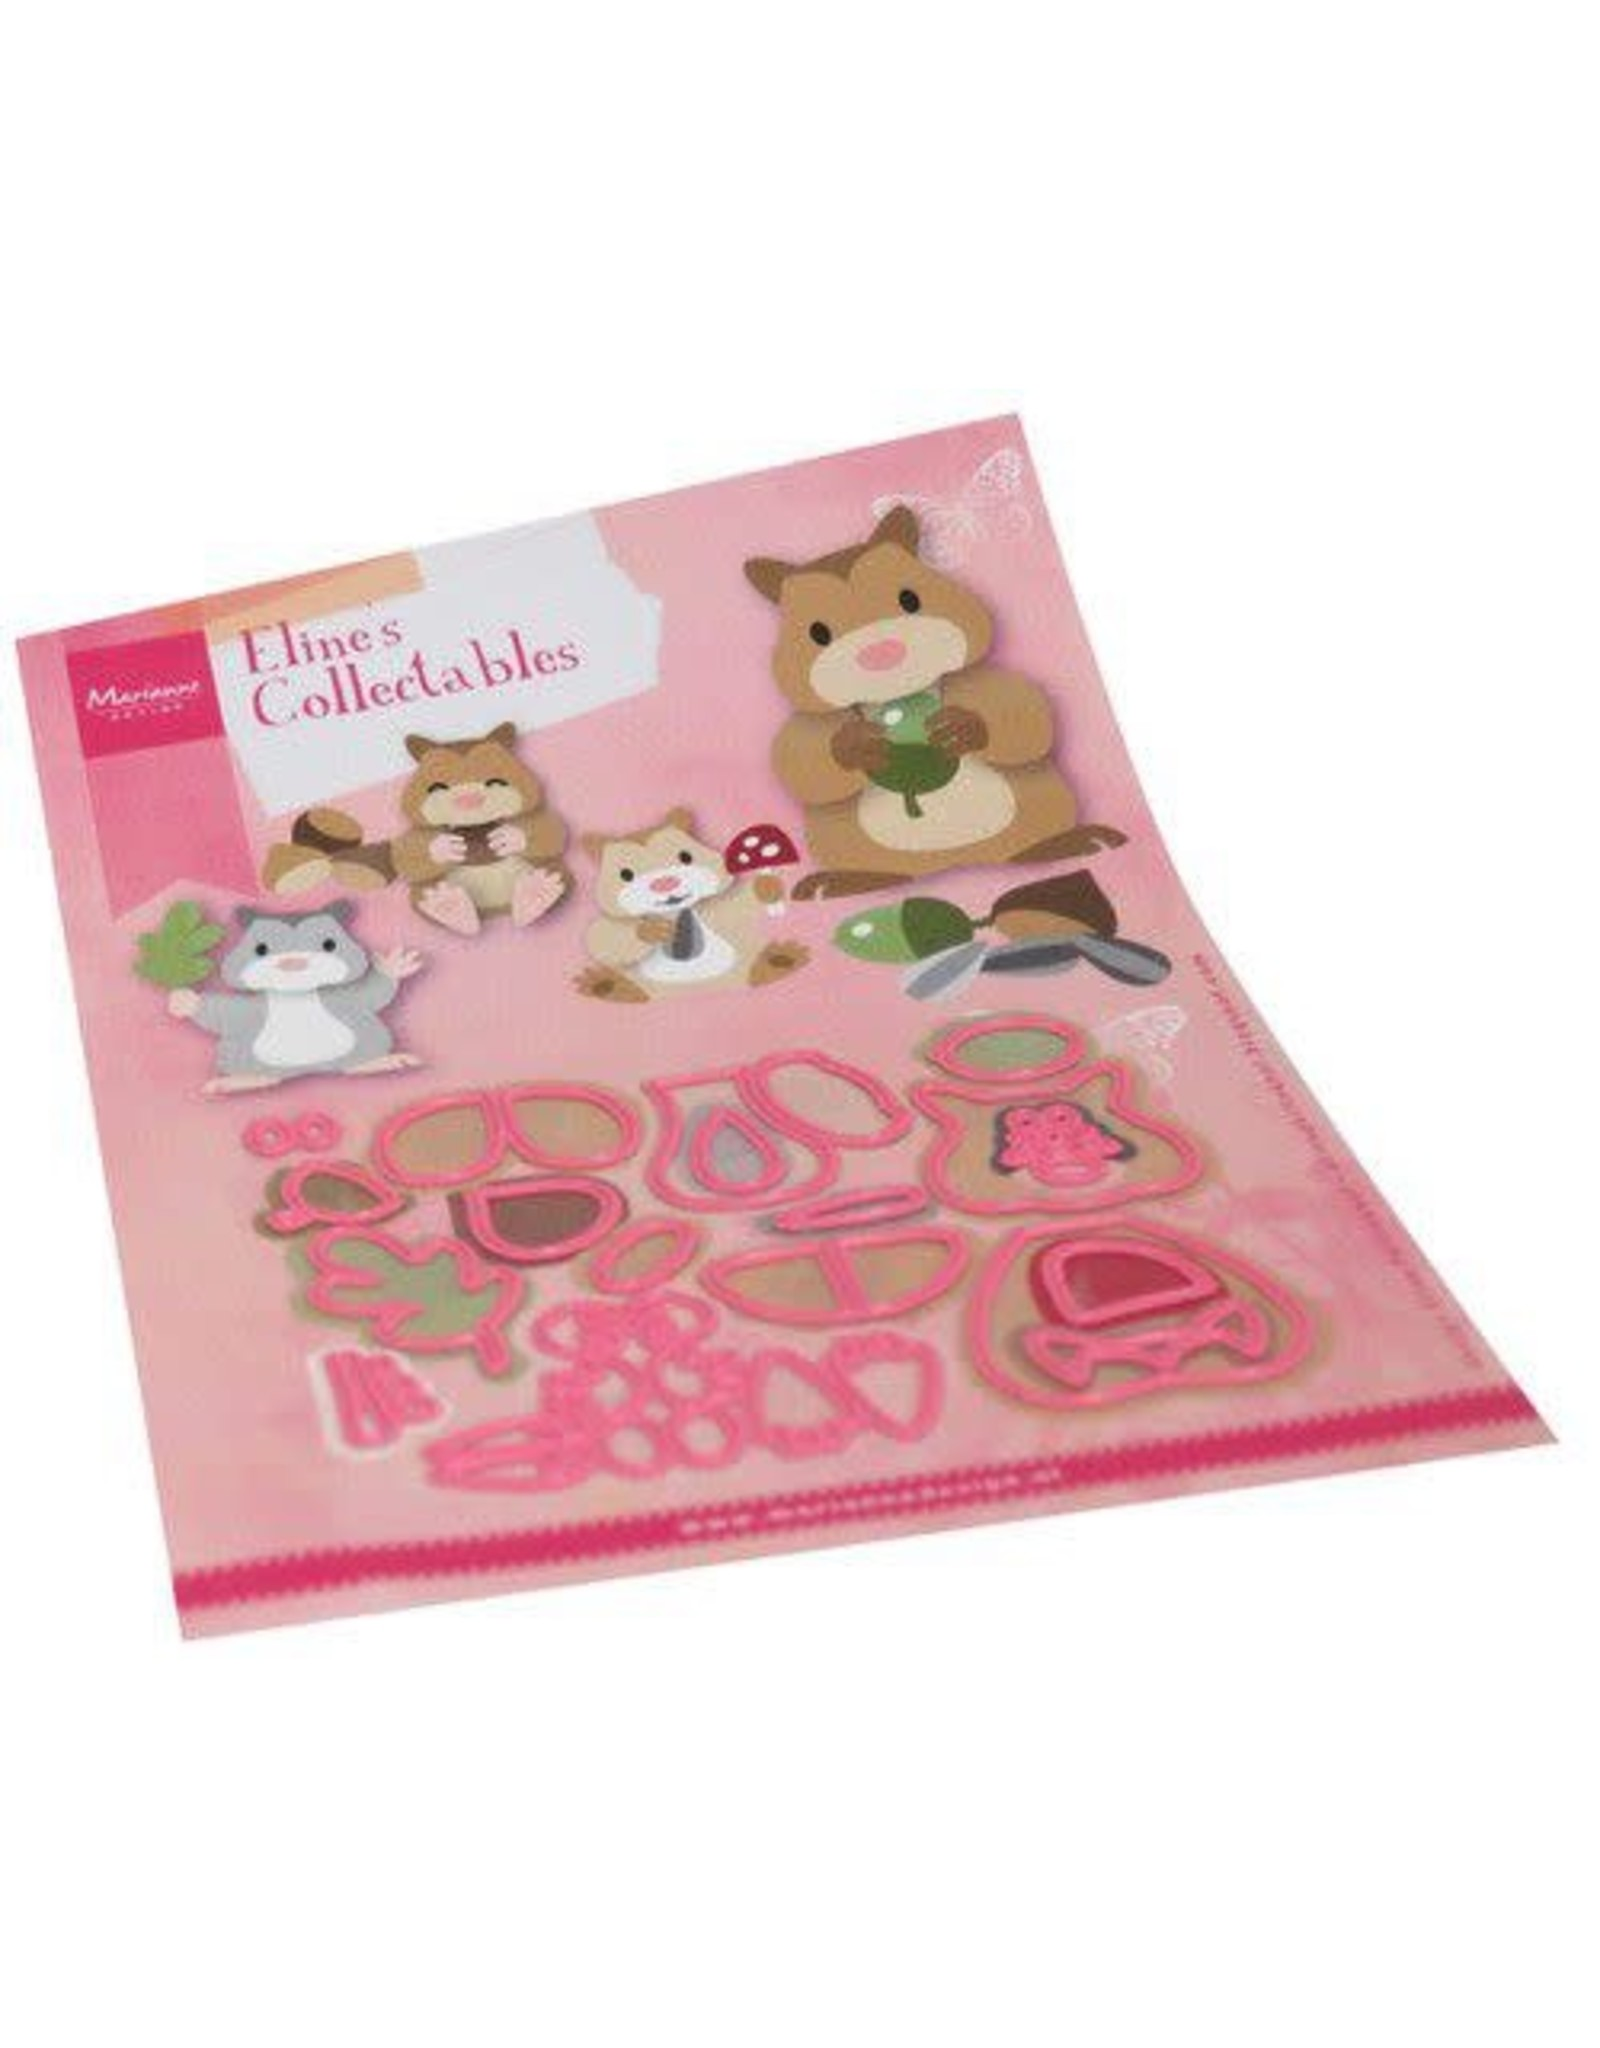 Marianne Design Marianne D Collectable Eline's Hamster COL1489 15x21 cm